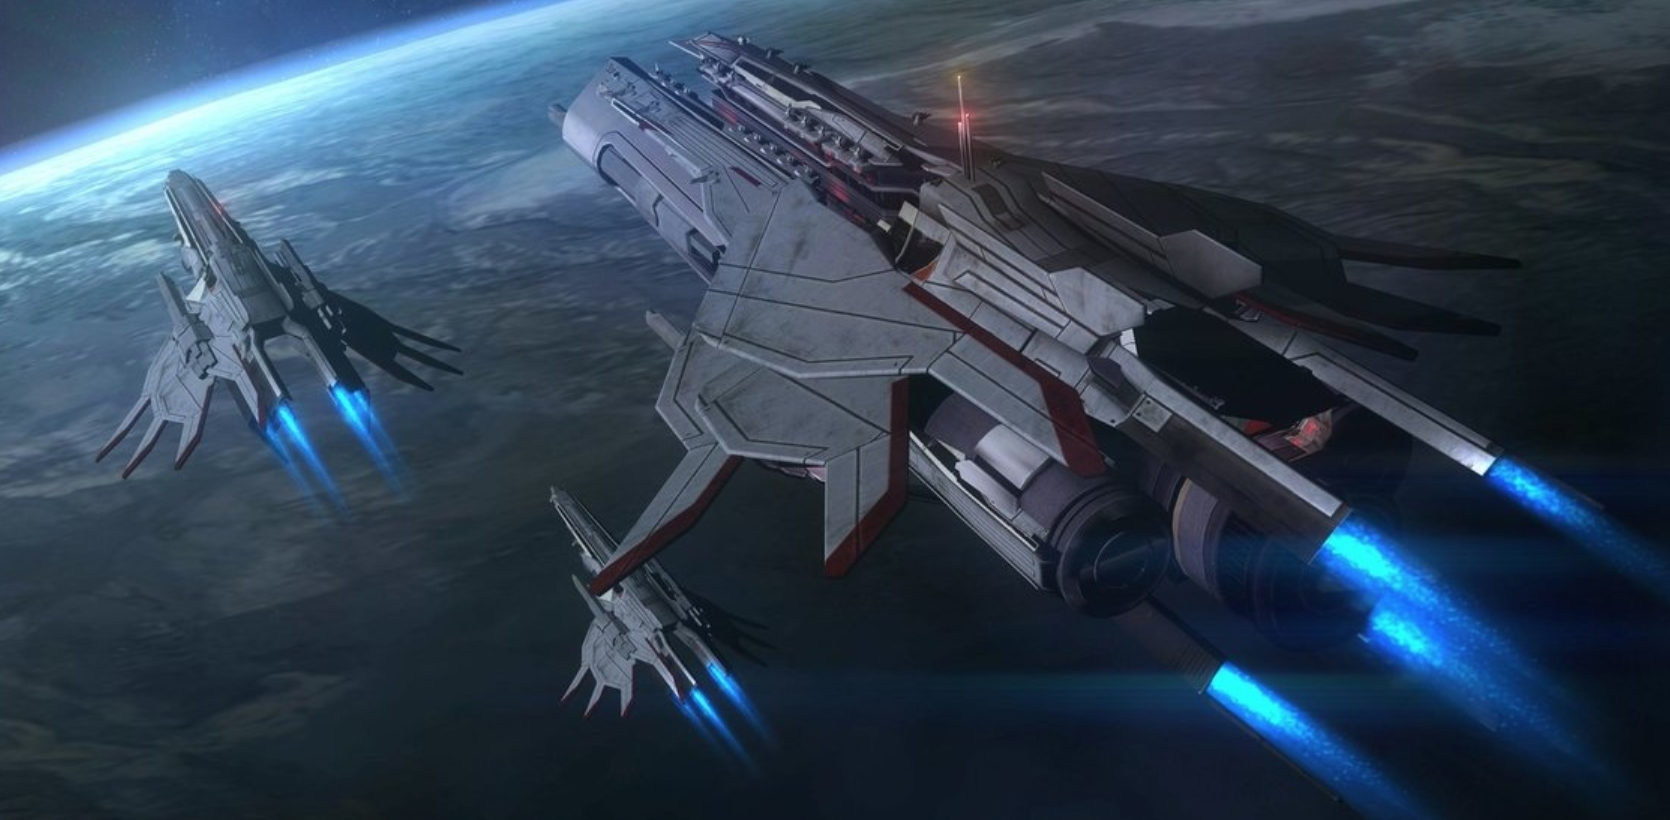 New Hierarchy Dreadnoughts commissioned into the Fleet 909740afec060829aabbe0c413eed953